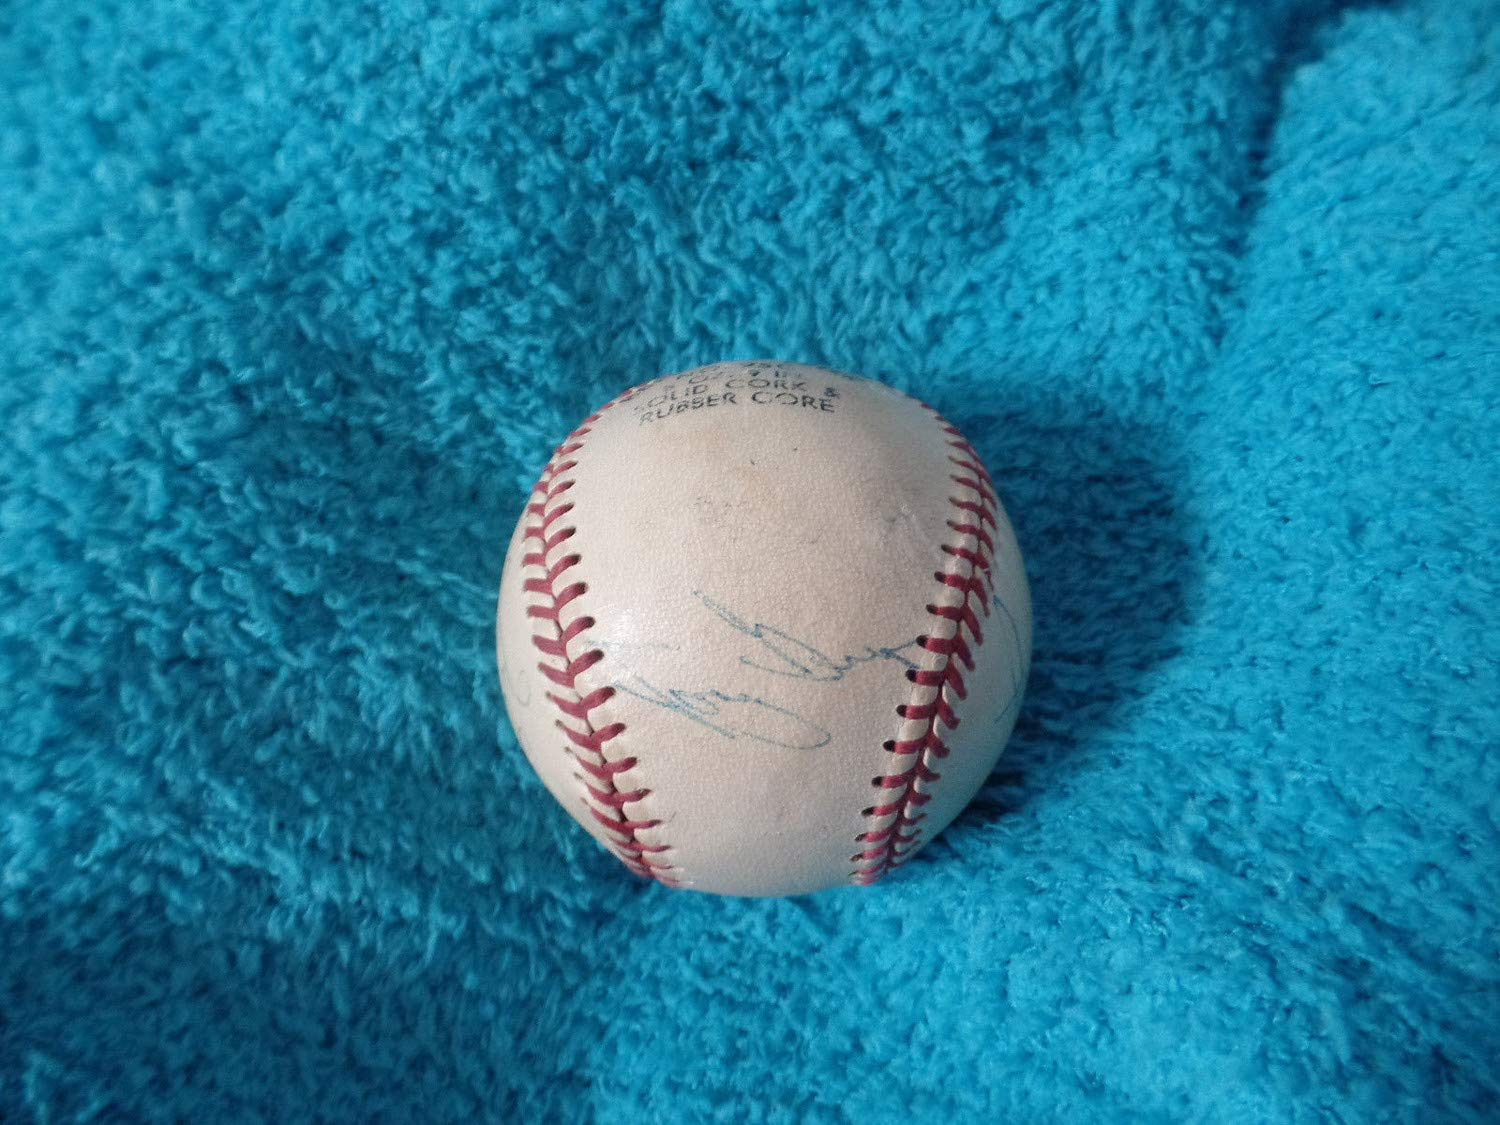 San Diego Padres Autographed Signed Baseball 6 Sigs JSA Authentic Letter Tony Gwynn